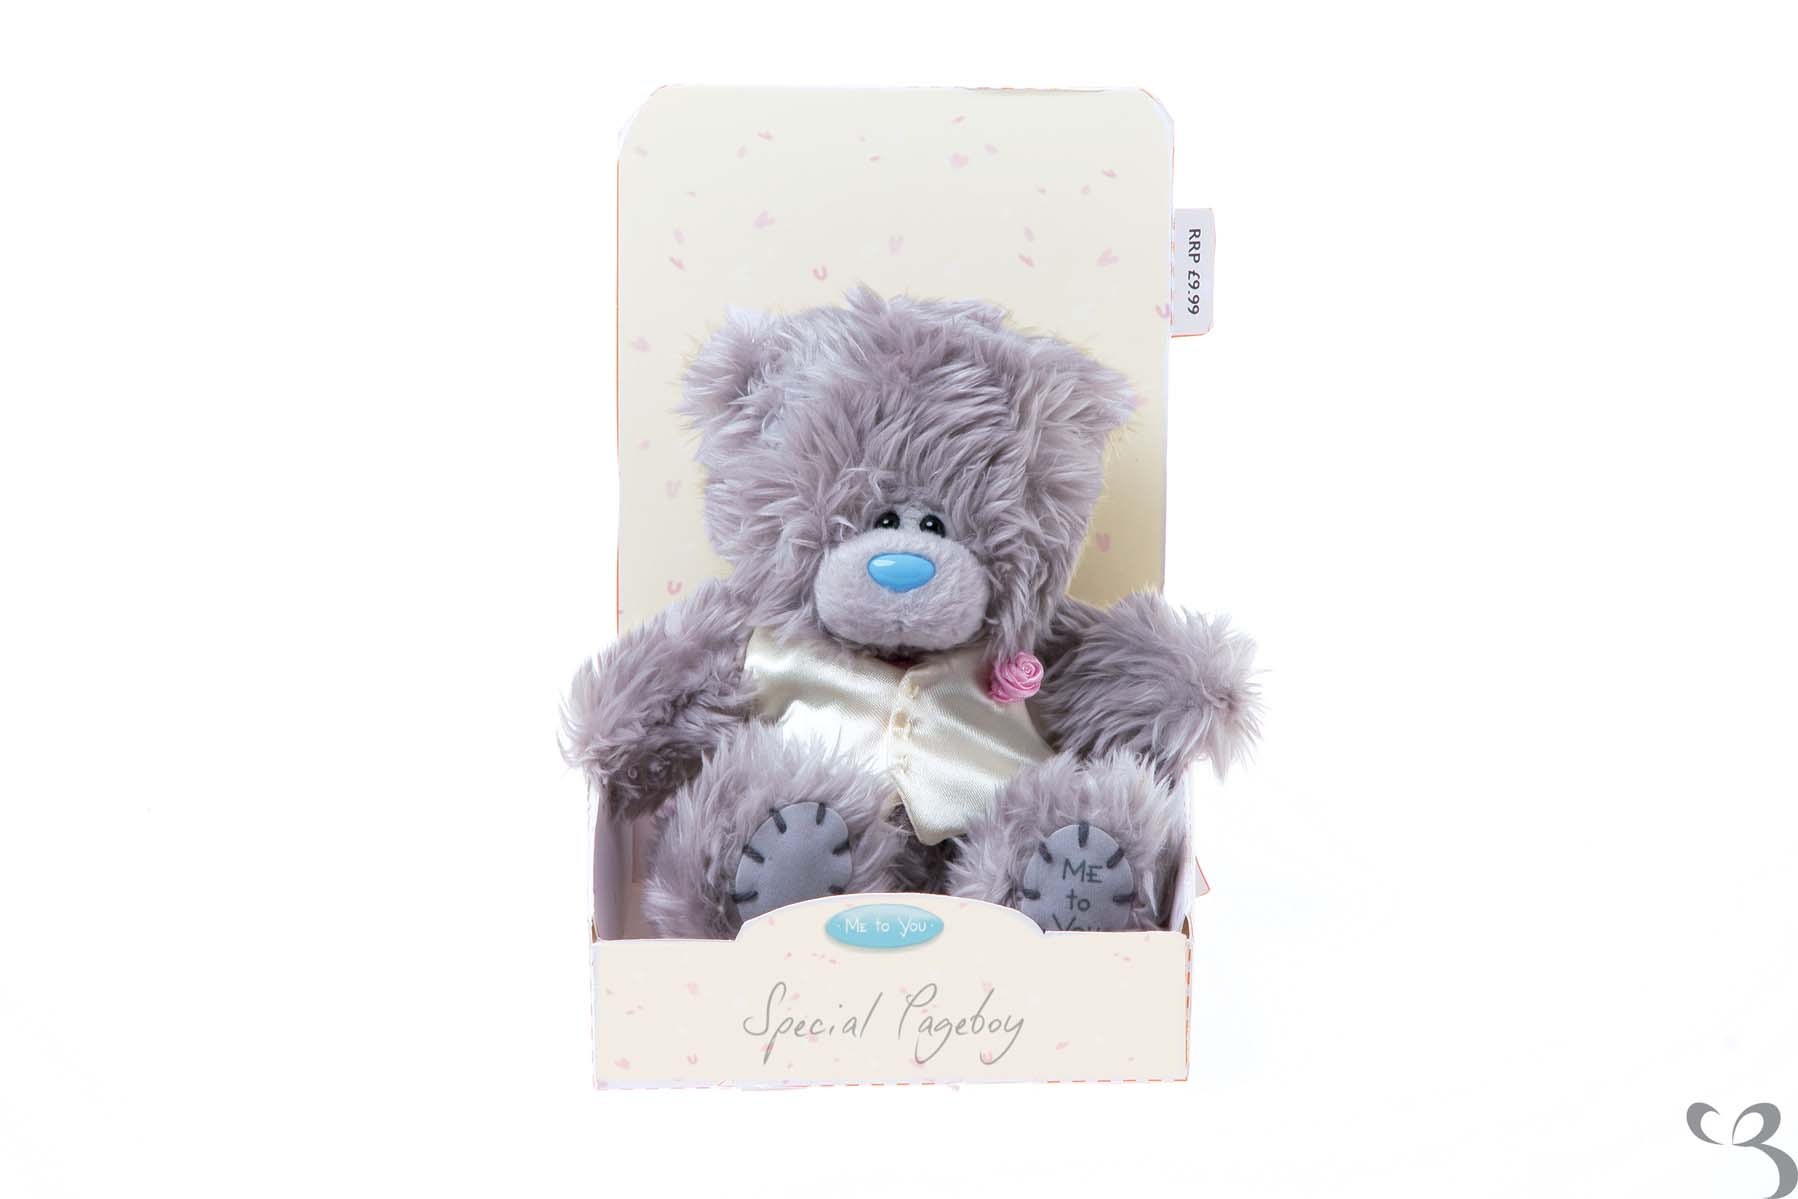 """Me To You Wedding Gifts: 5"""" Plush Special Pageboy Bear"""